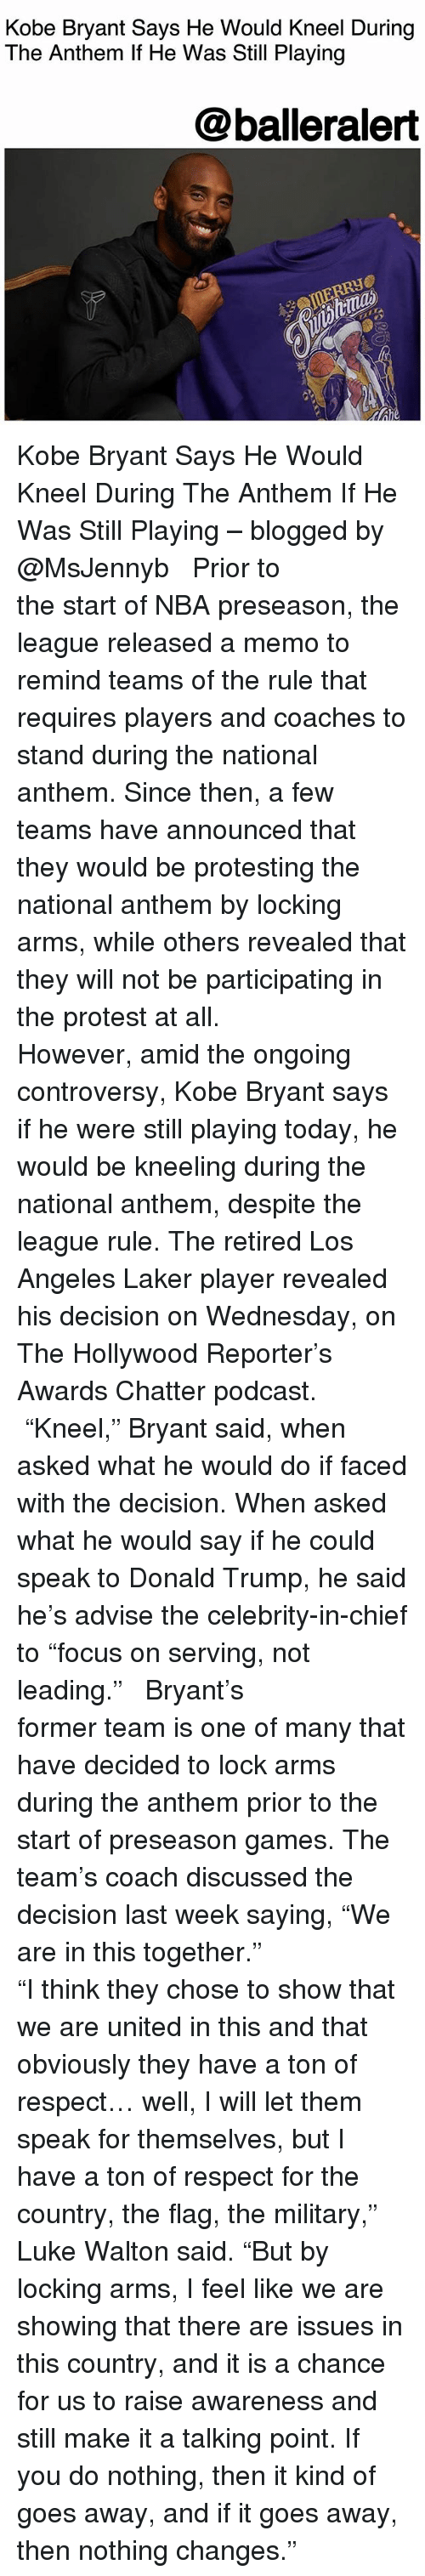 """Donald Trump, Kobe Bryant, and Luke Walton: Kobe Bryant Says He Would Kneel During  The Anthem If He Was Still Playing  @balleralert Kobe Bryant Says He Would Kneel During The Anthem If He Was Still Playing – blogged by @MsJennyb ⠀⠀⠀⠀⠀⠀⠀ ⠀⠀⠀⠀⠀⠀⠀ Prior to the start of NBA preseason, the league released a memo to remind teams of the rule that requires players and coaches to stand during the national anthem. Since then, a few teams have announced that they would be protesting the national anthem by locking arms, while others revealed that they will not be participating in the protest at all. ⠀⠀⠀⠀⠀⠀⠀ ⠀⠀⠀⠀⠀⠀⠀ However, amid the ongoing controversy, Kobe Bryant says if he were still playing today, he would be kneeling during the national anthem, despite the league rule. The retired Los Angeles Laker player revealed his decision on Wednesday, on The Hollywood Reporter's Awards Chatter podcast. ⠀⠀⠀⠀⠀⠀⠀ ⠀⠀⠀⠀⠀⠀⠀ """"Kneel,"""" Bryant said, when asked what he would do if faced with the decision. When asked what he would say if he could speak to Donald Trump, he said he's advise the celebrity-in-chief to """"focus on serving, not leading."""" ⠀⠀⠀⠀⠀⠀⠀ ⠀⠀⠀⠀⠀⠀⠀ Bryant's former team is one of many that have decided to lock arms during the anthem prior to the start of preseason games. The team's coach discussed the decision last week saying, """"We are in this together."""" ⠀⠀⠀⠀⠀⠀⠀ ⠀⠀⠀⠀⠀⠀⠀ """"I think they chose to show that we are united in this and that obviously they have a ton of respect… well, I will let them speak for themselves, but I have a ton of respect for the country, the flag, the military,"""" Luke Walton said. """"But by locking arms, I feel like we are showing that there are issues in this country, and it is a chance for us to raise awareness and still make it a talking point. If you do nothing, then it kind of goes away, and if it goes away, then nothing changes."""""""